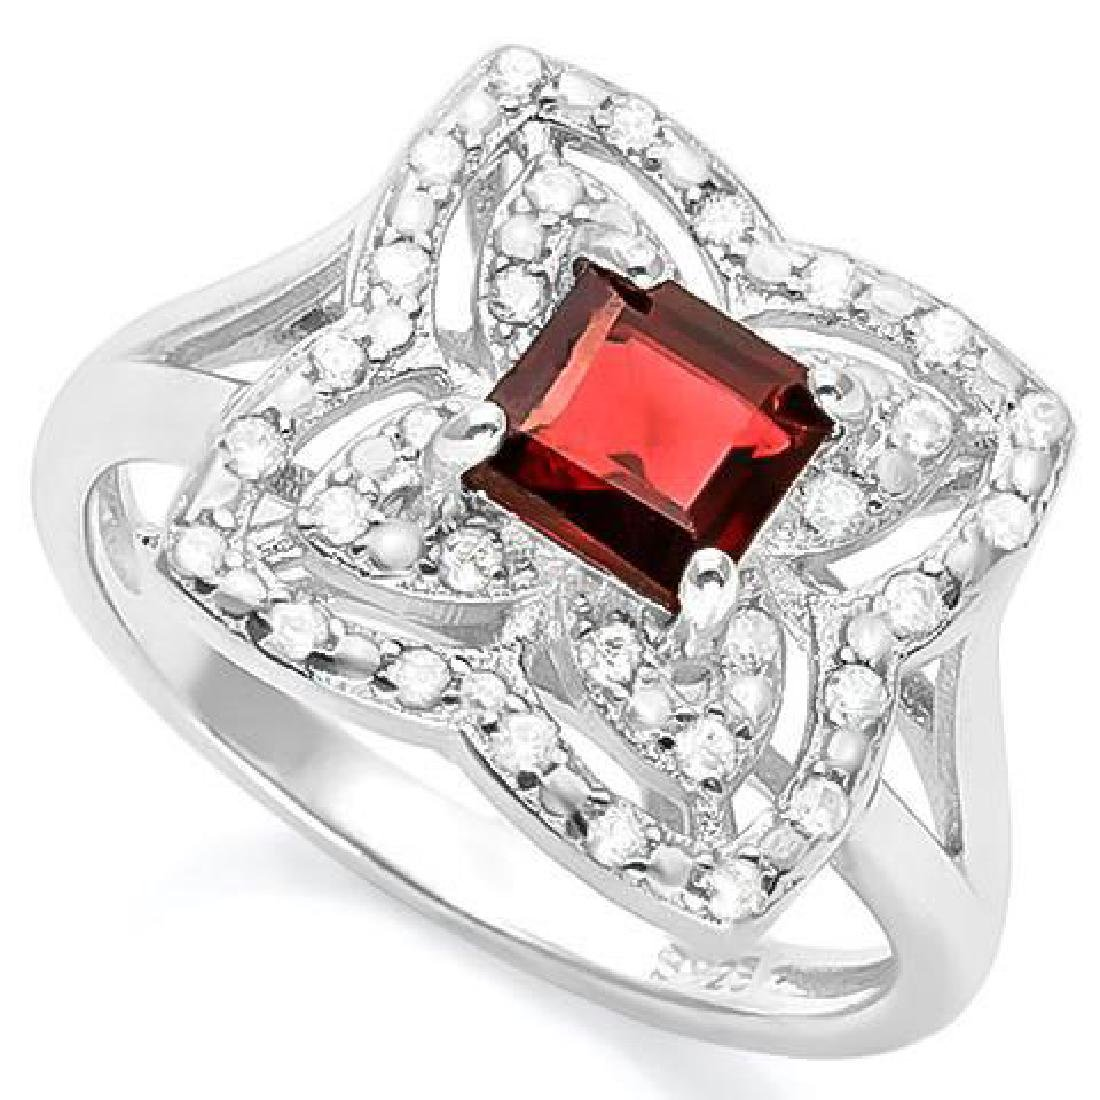 1 CARAT GARNET & (32 PCS) FLAWLESS CREATED DIAMOND 925